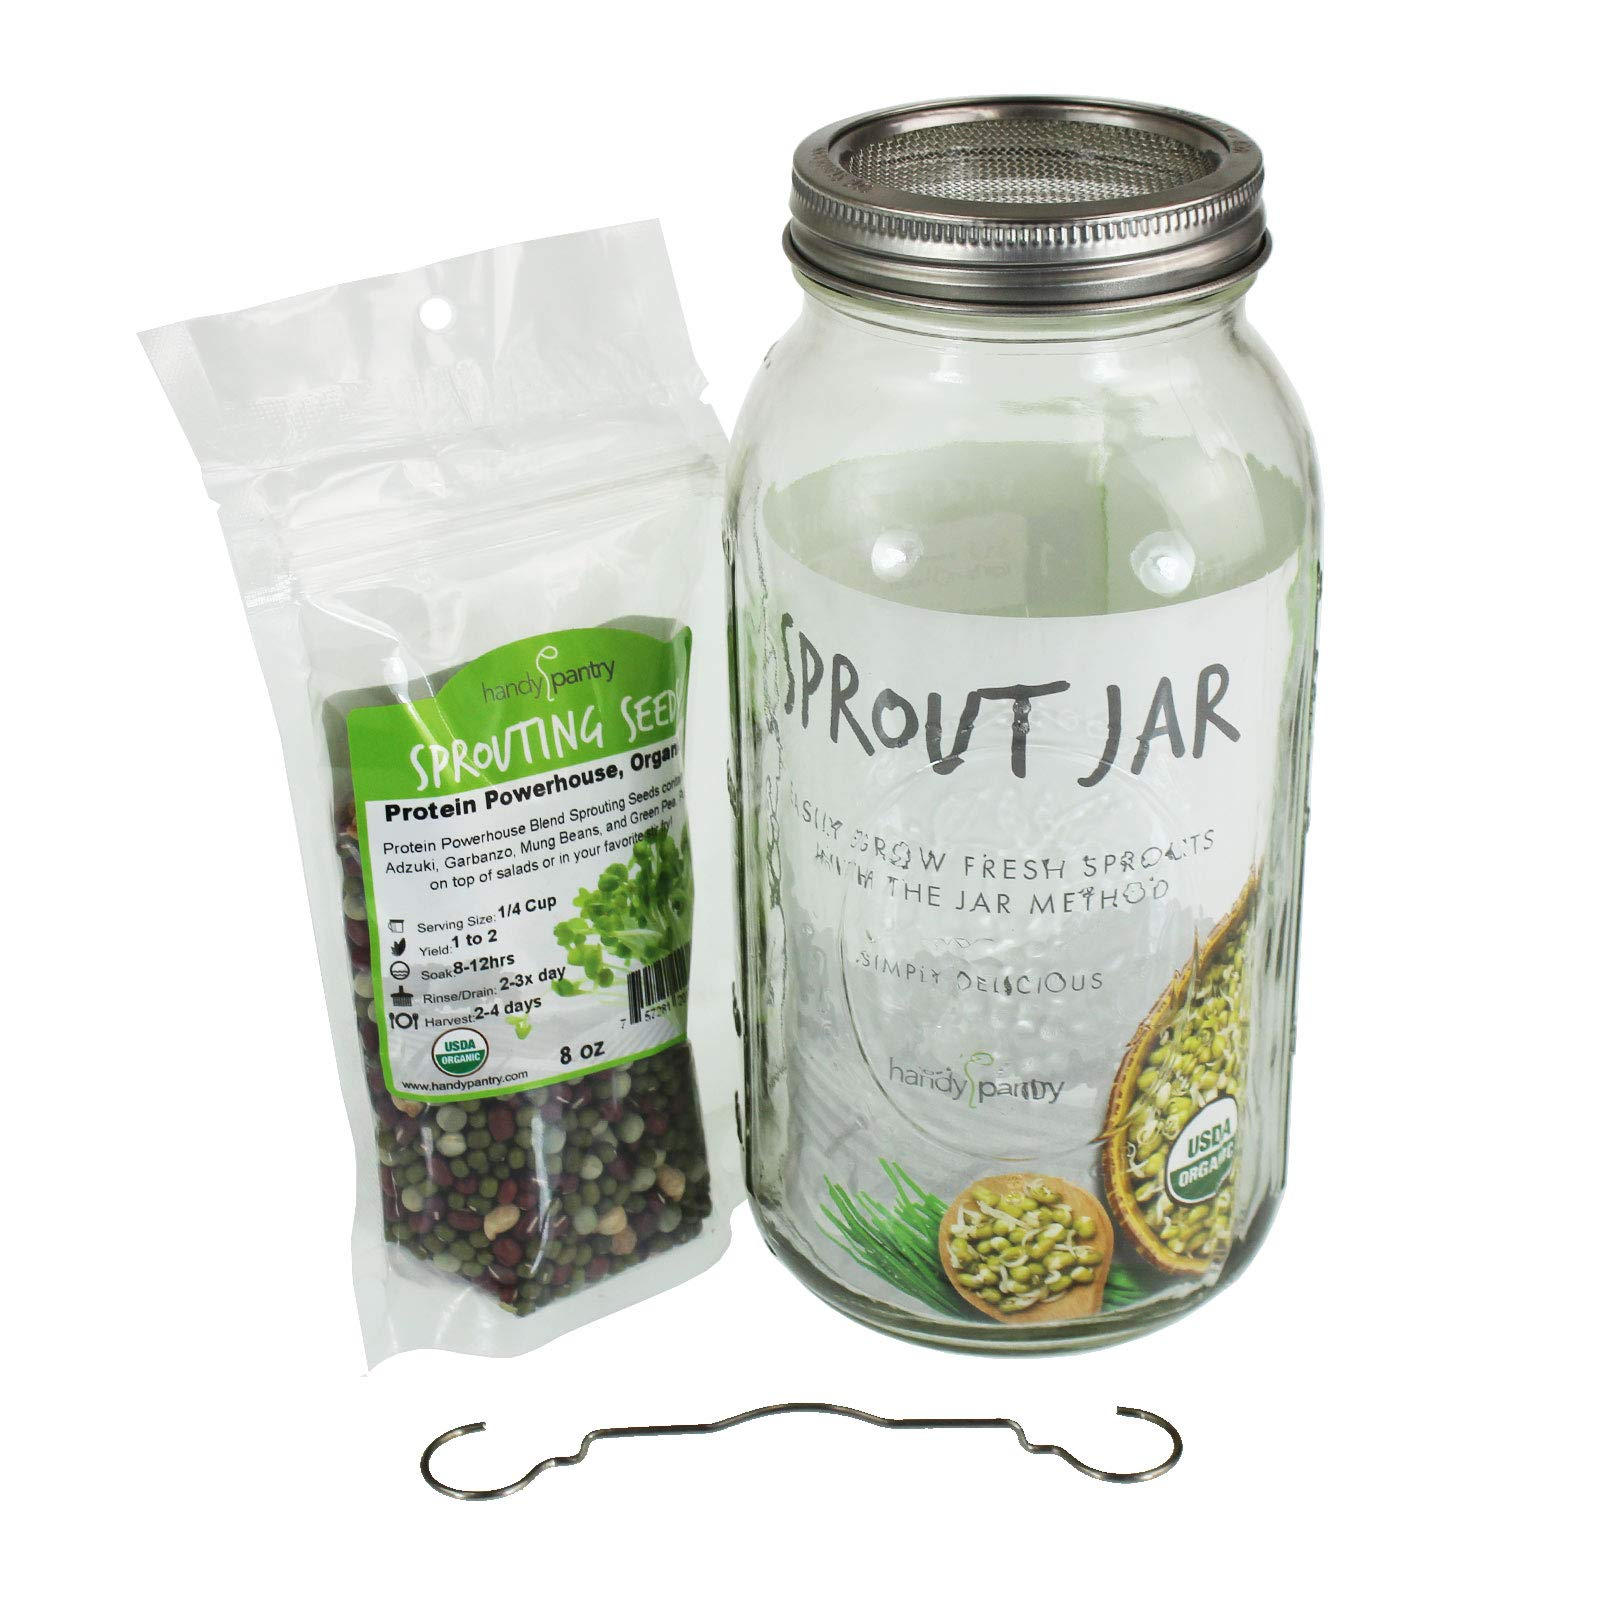 Complete home kitchen sprouting system Includes wide mouth half gallon jar, 316 stainless steel sprouting ring with mesh strainer, a counter drain stand, Protein Powerhouse,organic sprouting seed mix